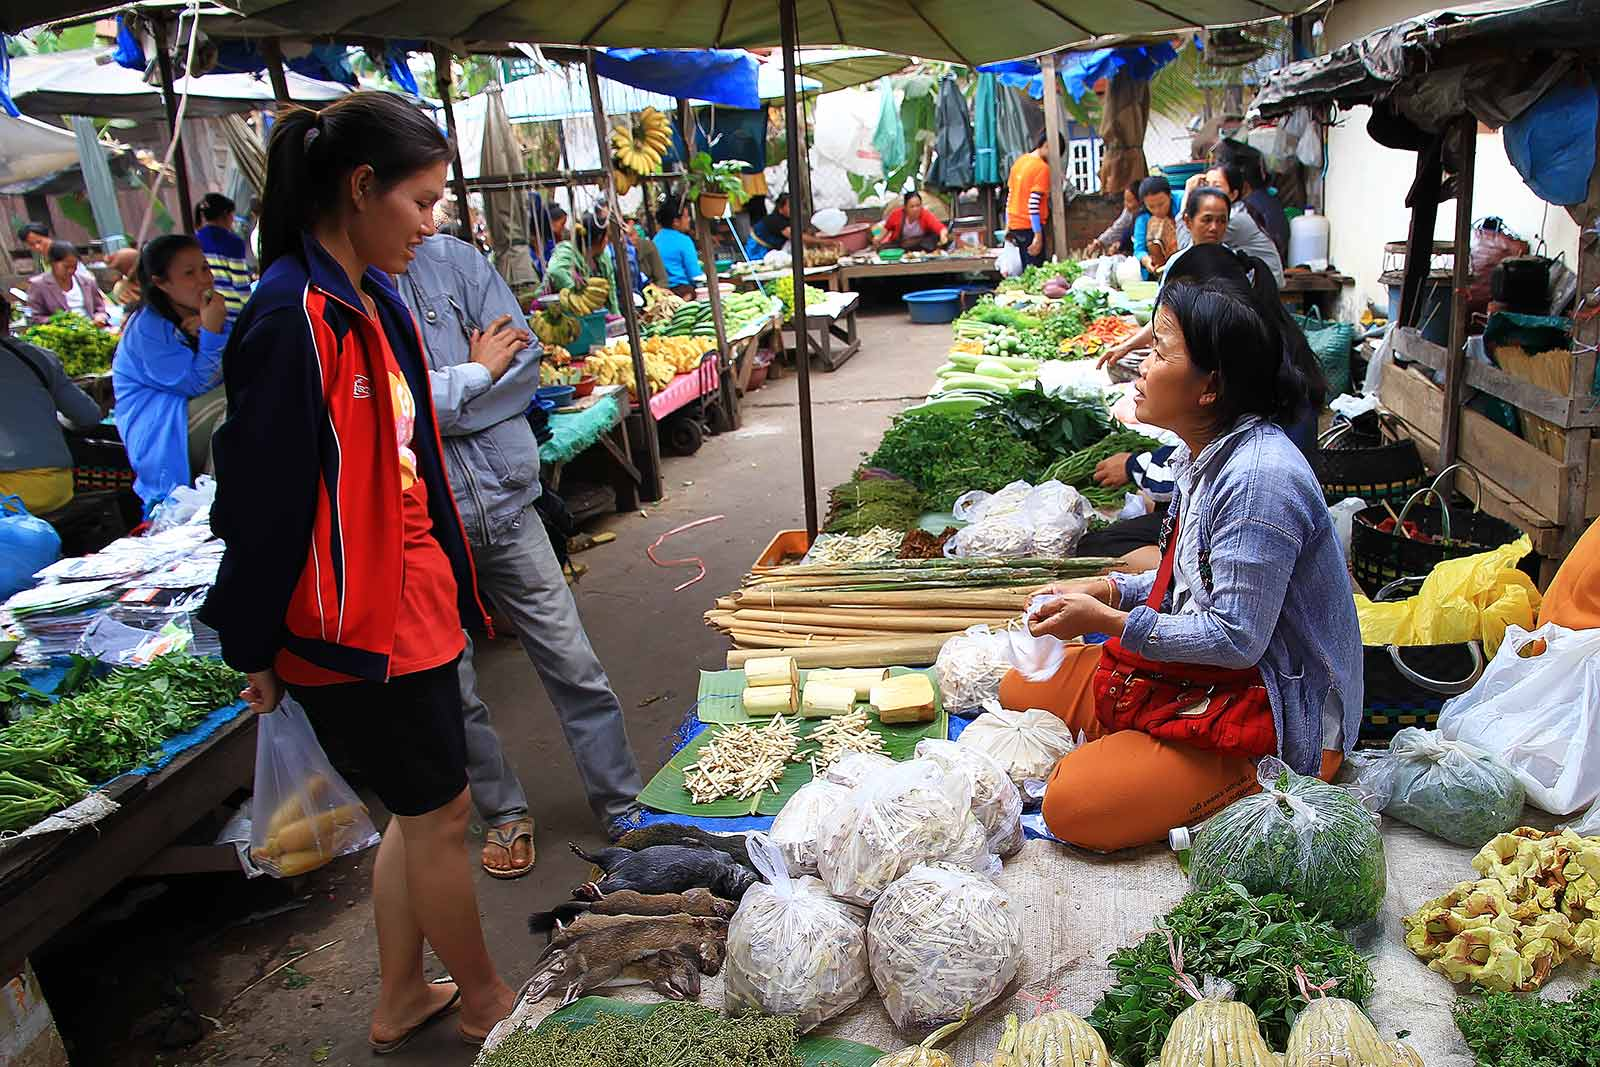 Local business at a market in Laos.